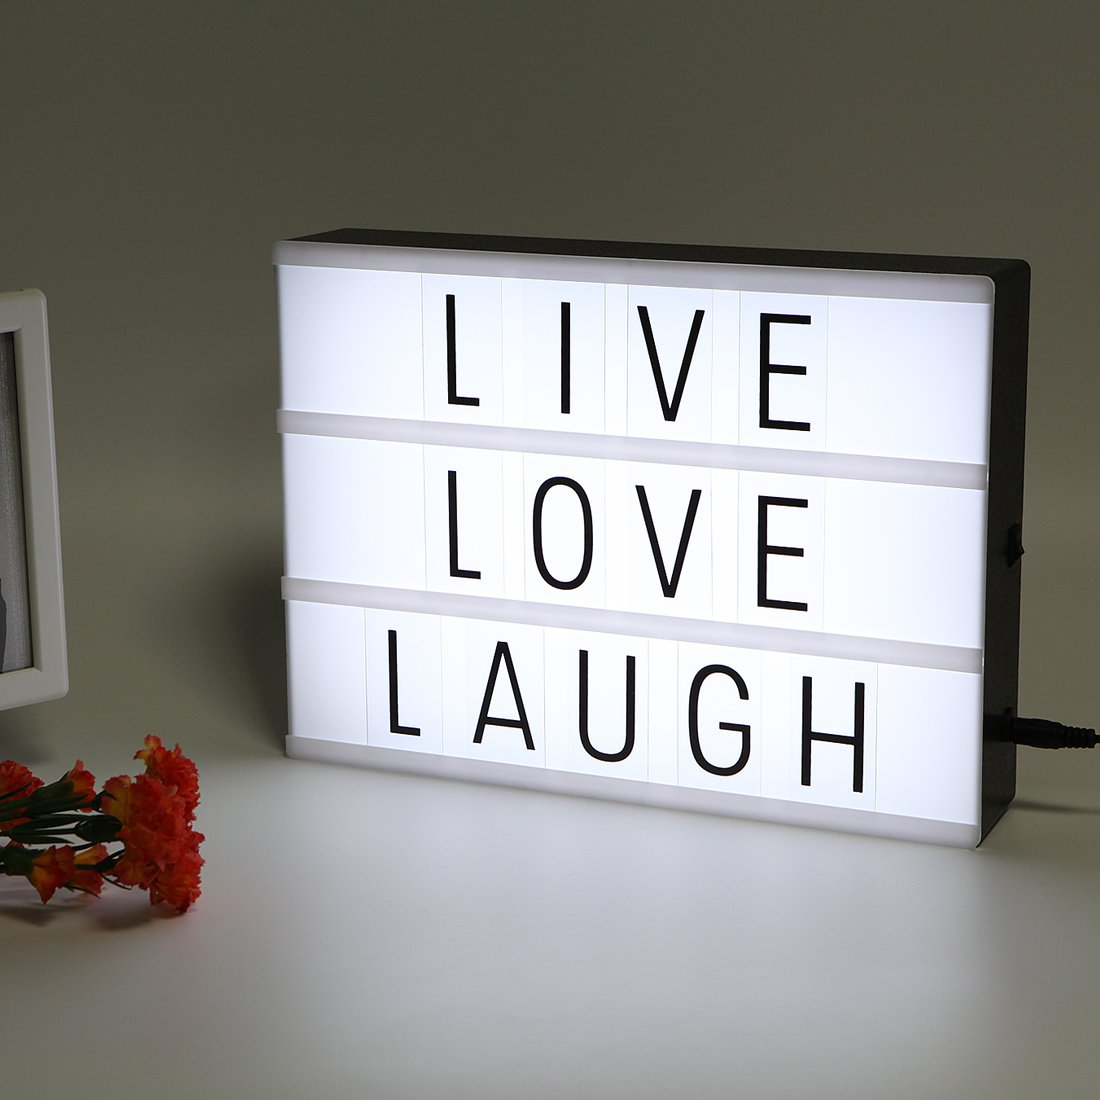 LITENERGY A4 Size Cinematic Light Up Box with Letters and LED Light by LitEnergy